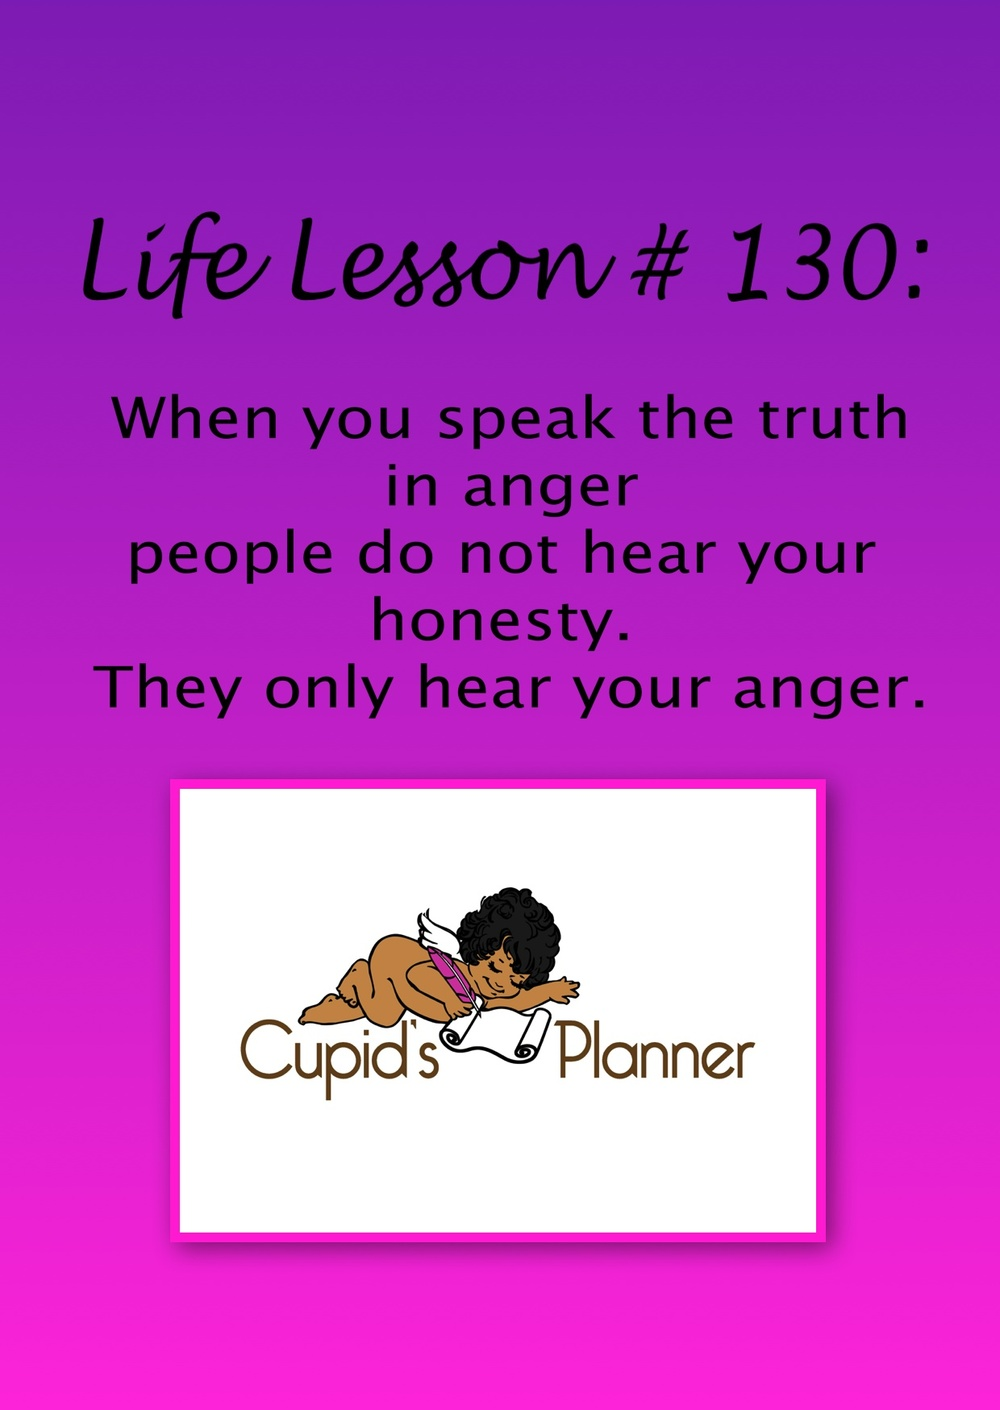 Life lesson speaking in anger